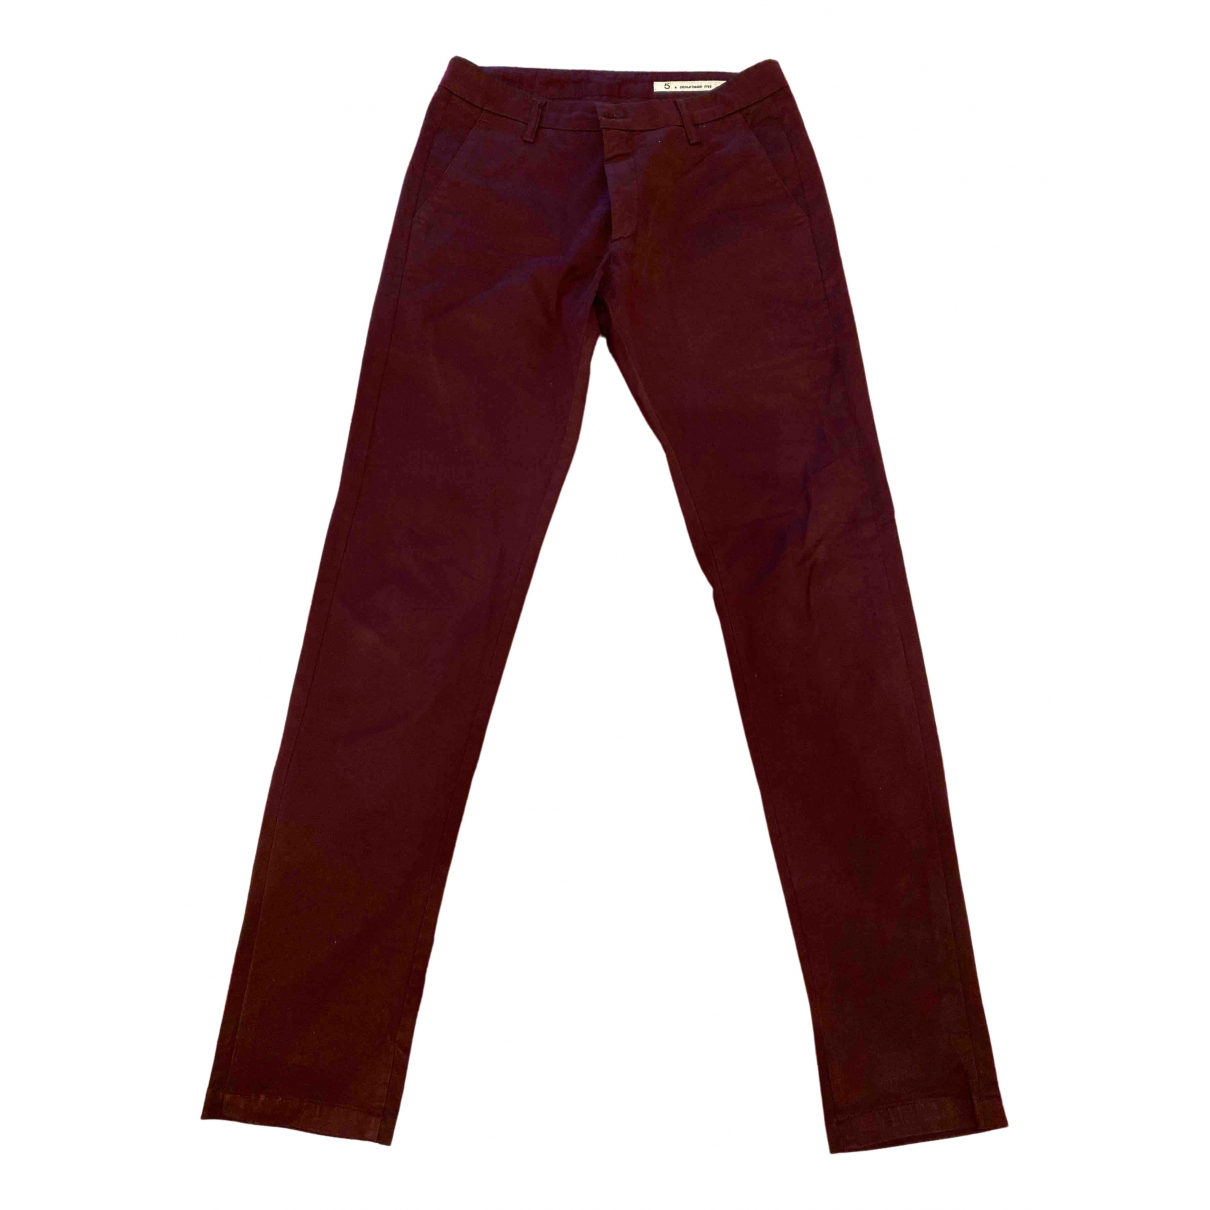 Department 5 \N Burgundy Cotton Trousers for Men 30 UK - US